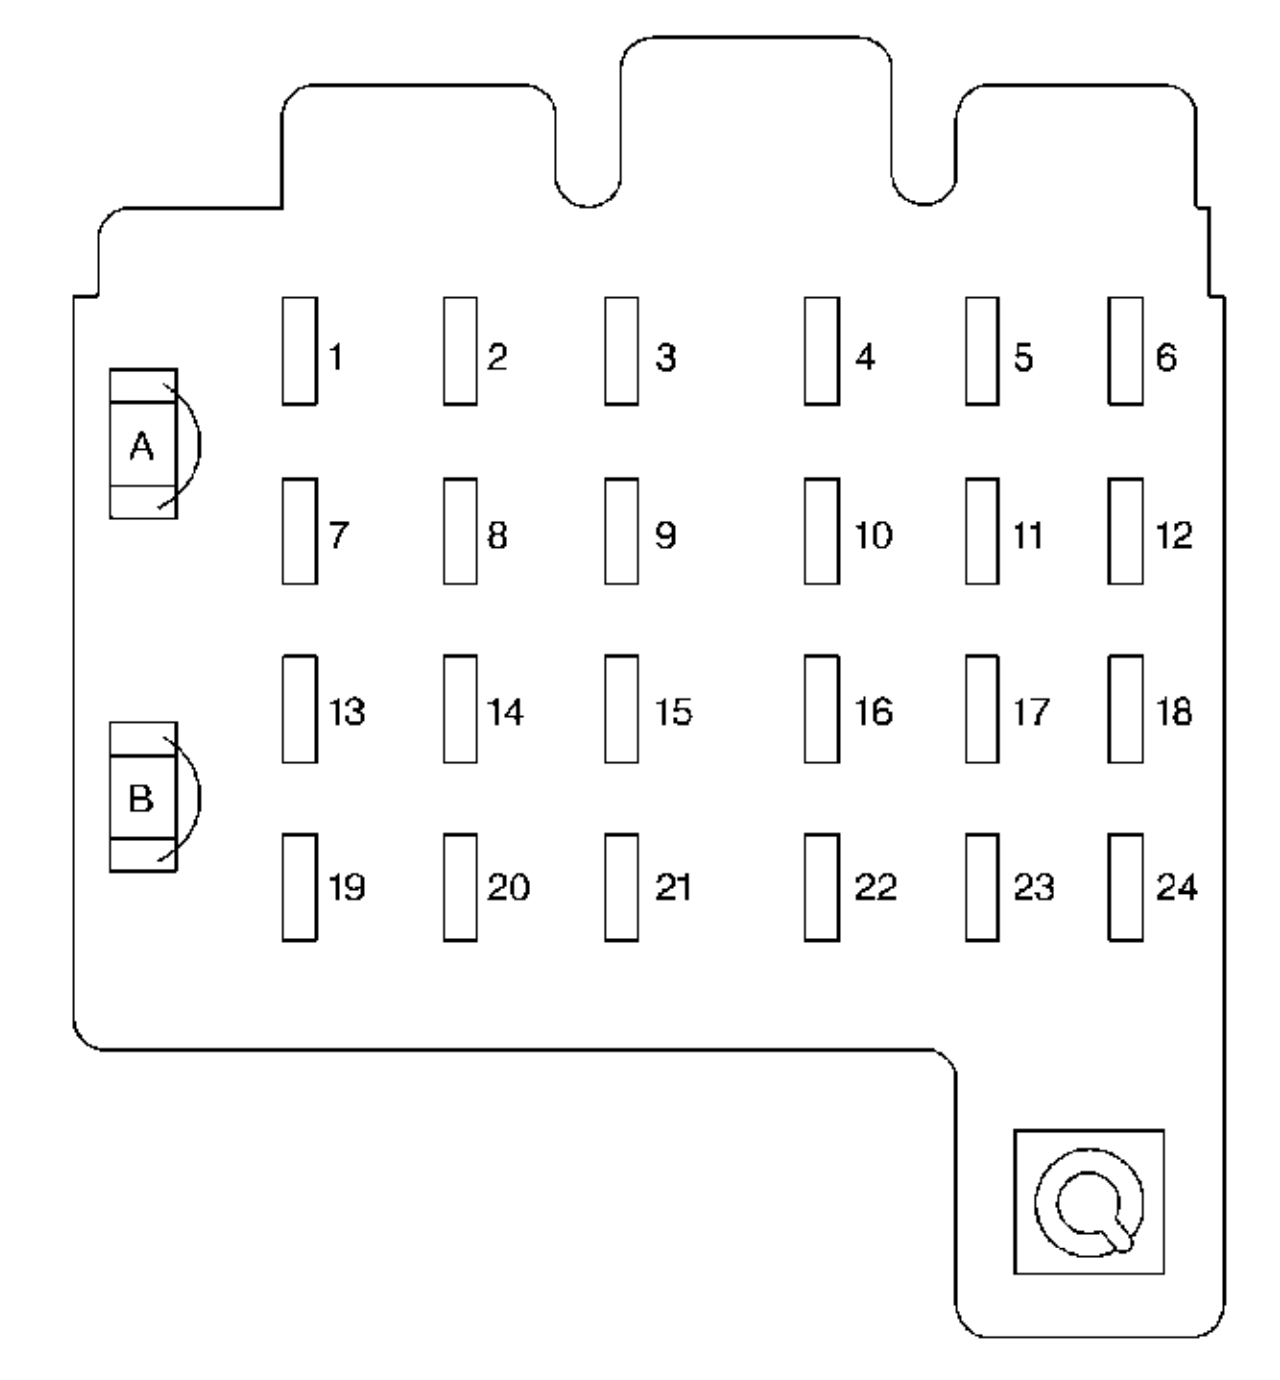 hight resolution of fuse box diagram also 1999 chevy cavalier engine on 99 chevy s10 1999 chevy s10 starter wiring diagram 99 chevy s10 fuse diagram